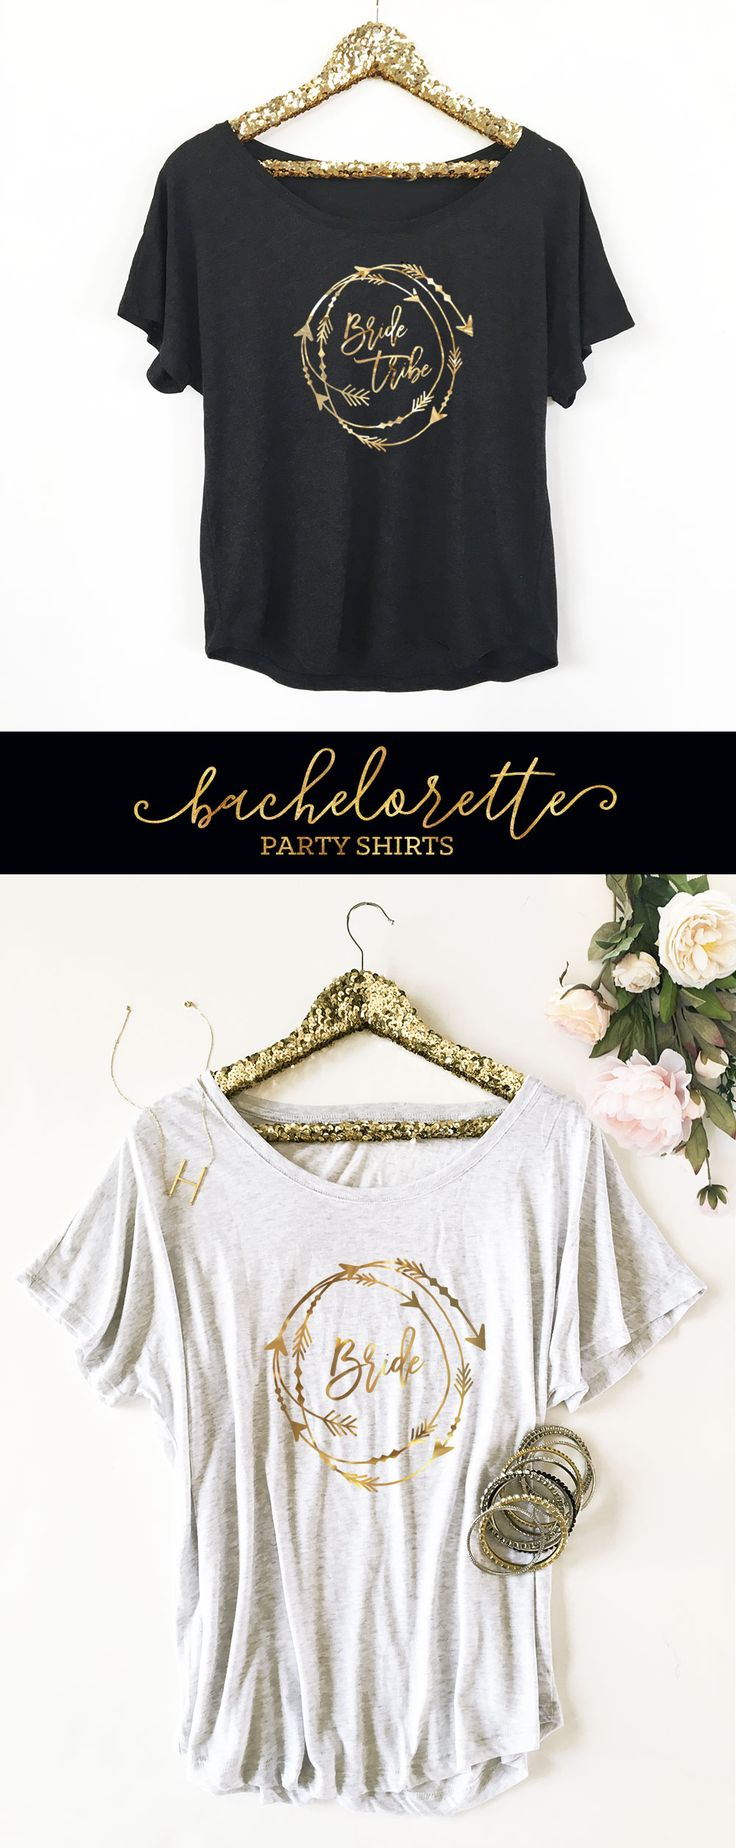 The perfect gift for your favorite women! | Bachelorette Party Shirts | Bride Tribe Shirts | Bride To Be Shirt | Bachelorette Party Weekend | Gold Bachelorette Party Ideas